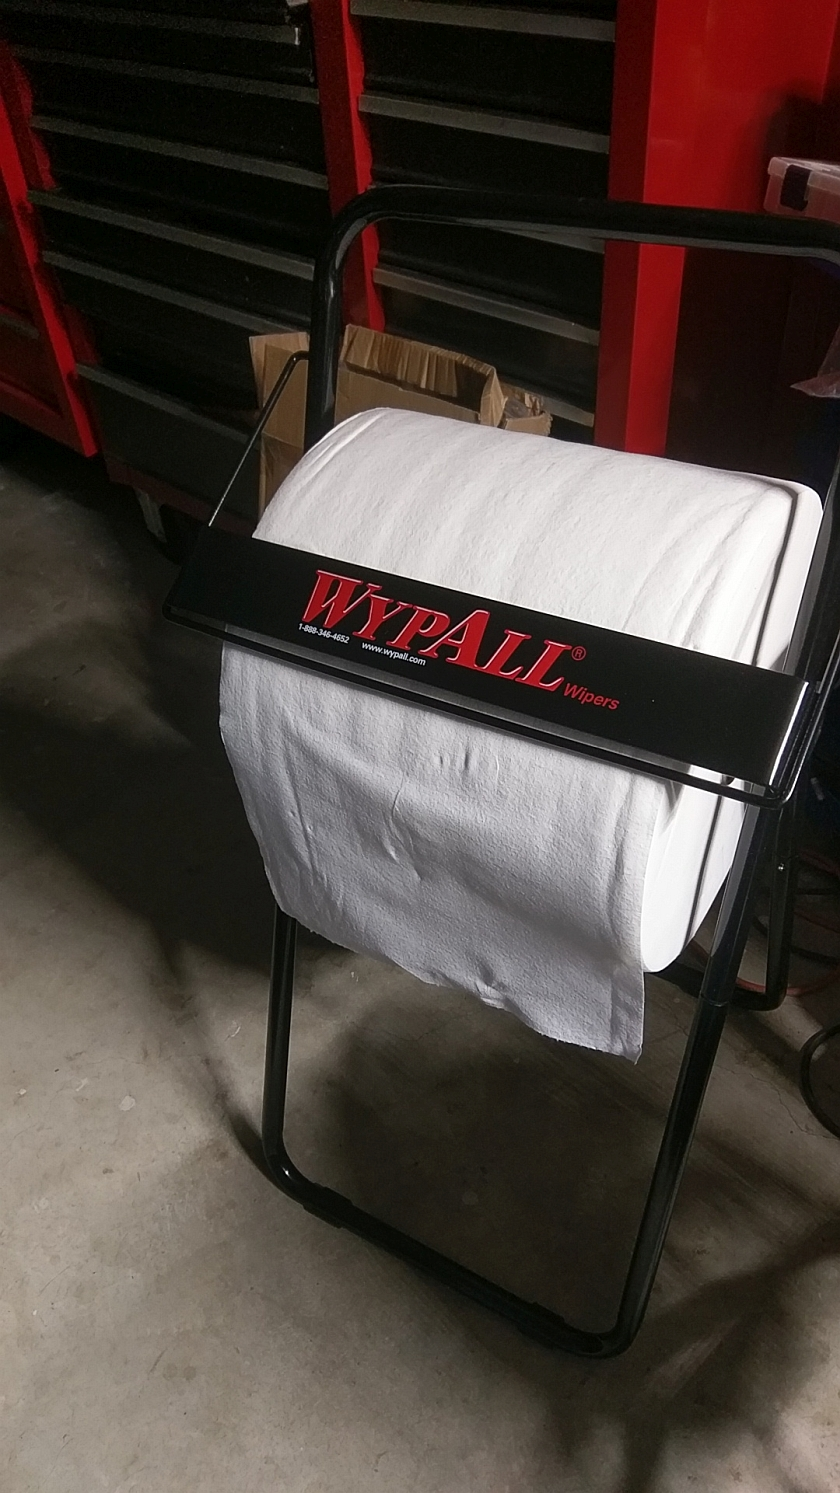 WypAll L30 Towels and Dispenser